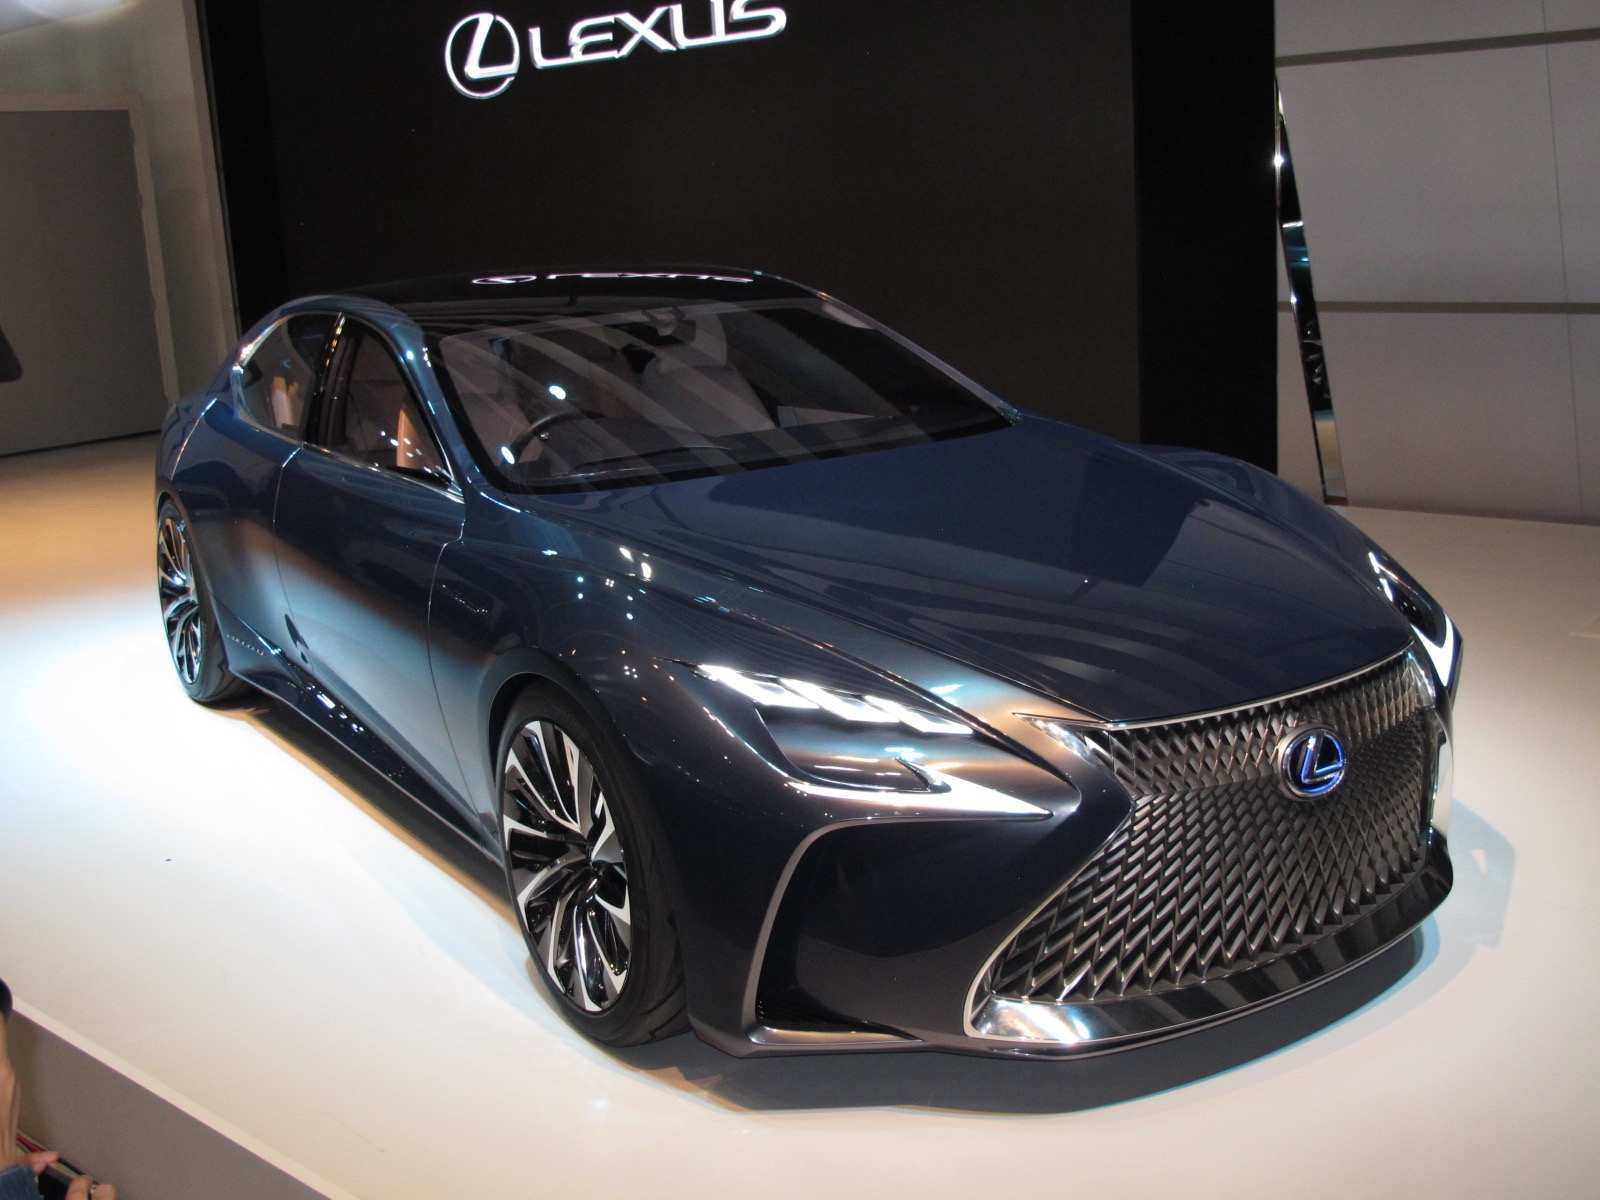 25 Best Review Lexus 2020 Es New Concept Pictures for Lexus 2020 Es New Concept